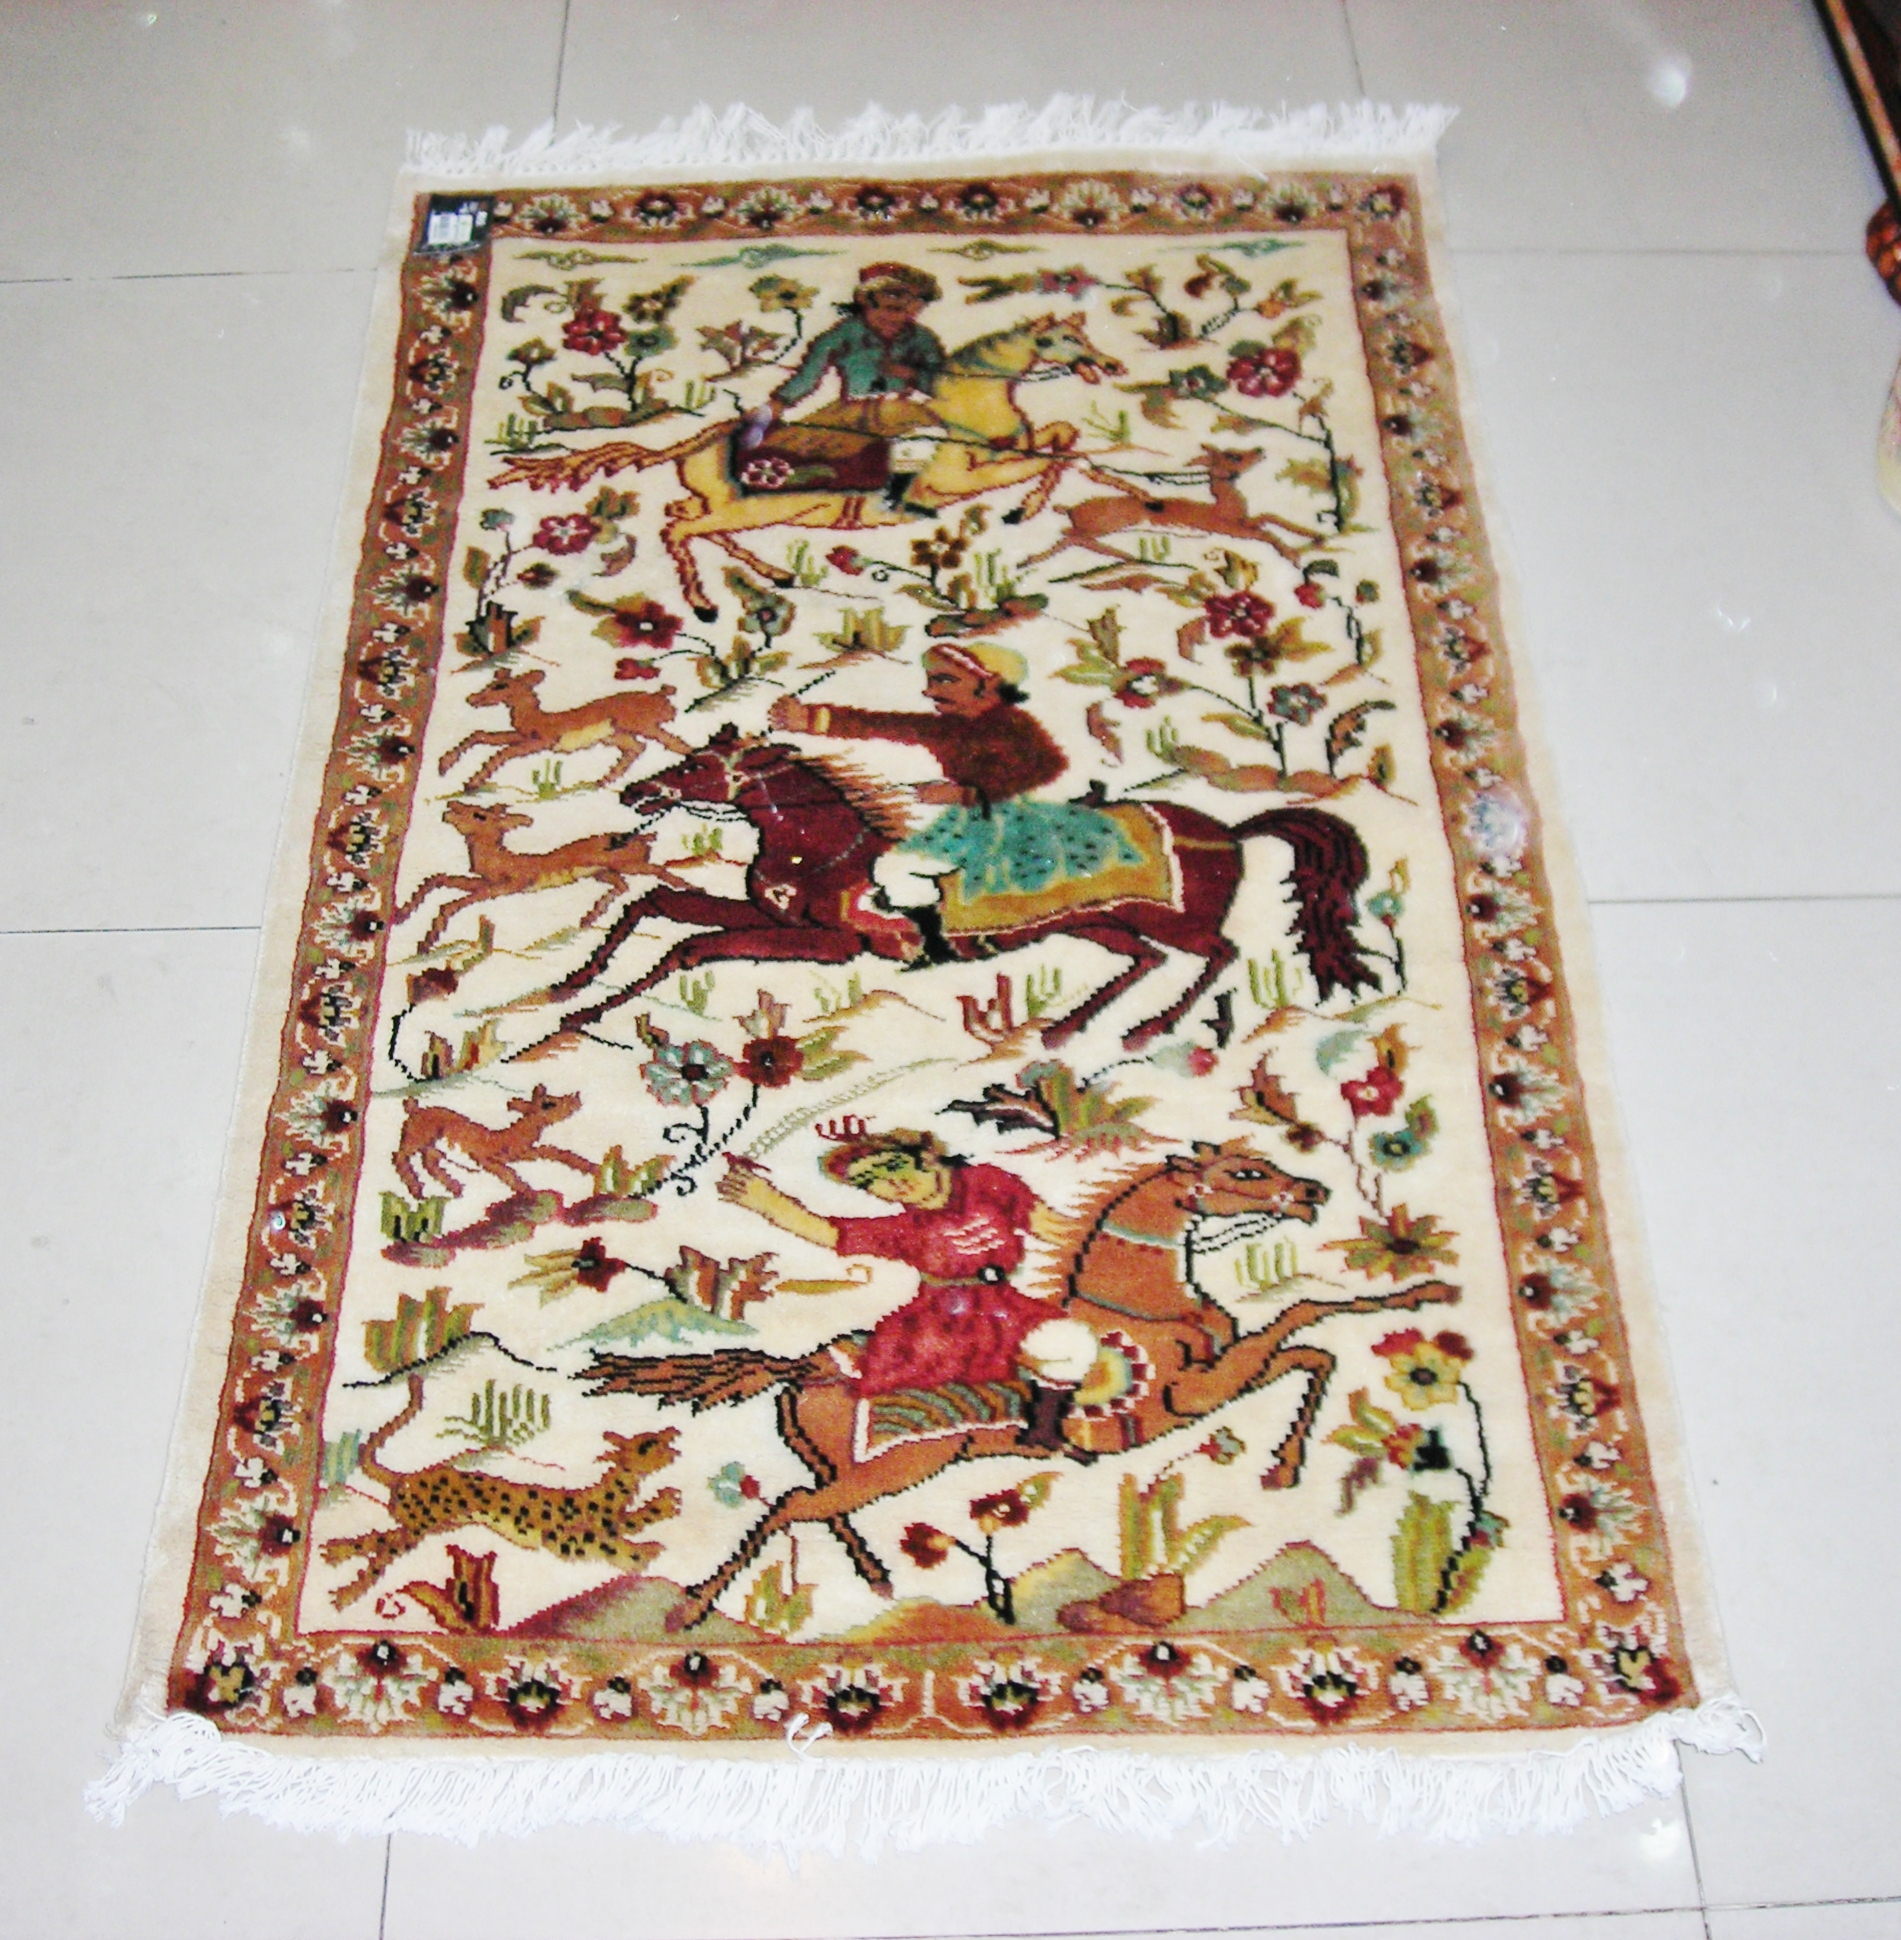 Moghal Hunting silk pictorial 2.5x4 ft persian rug no. 6733